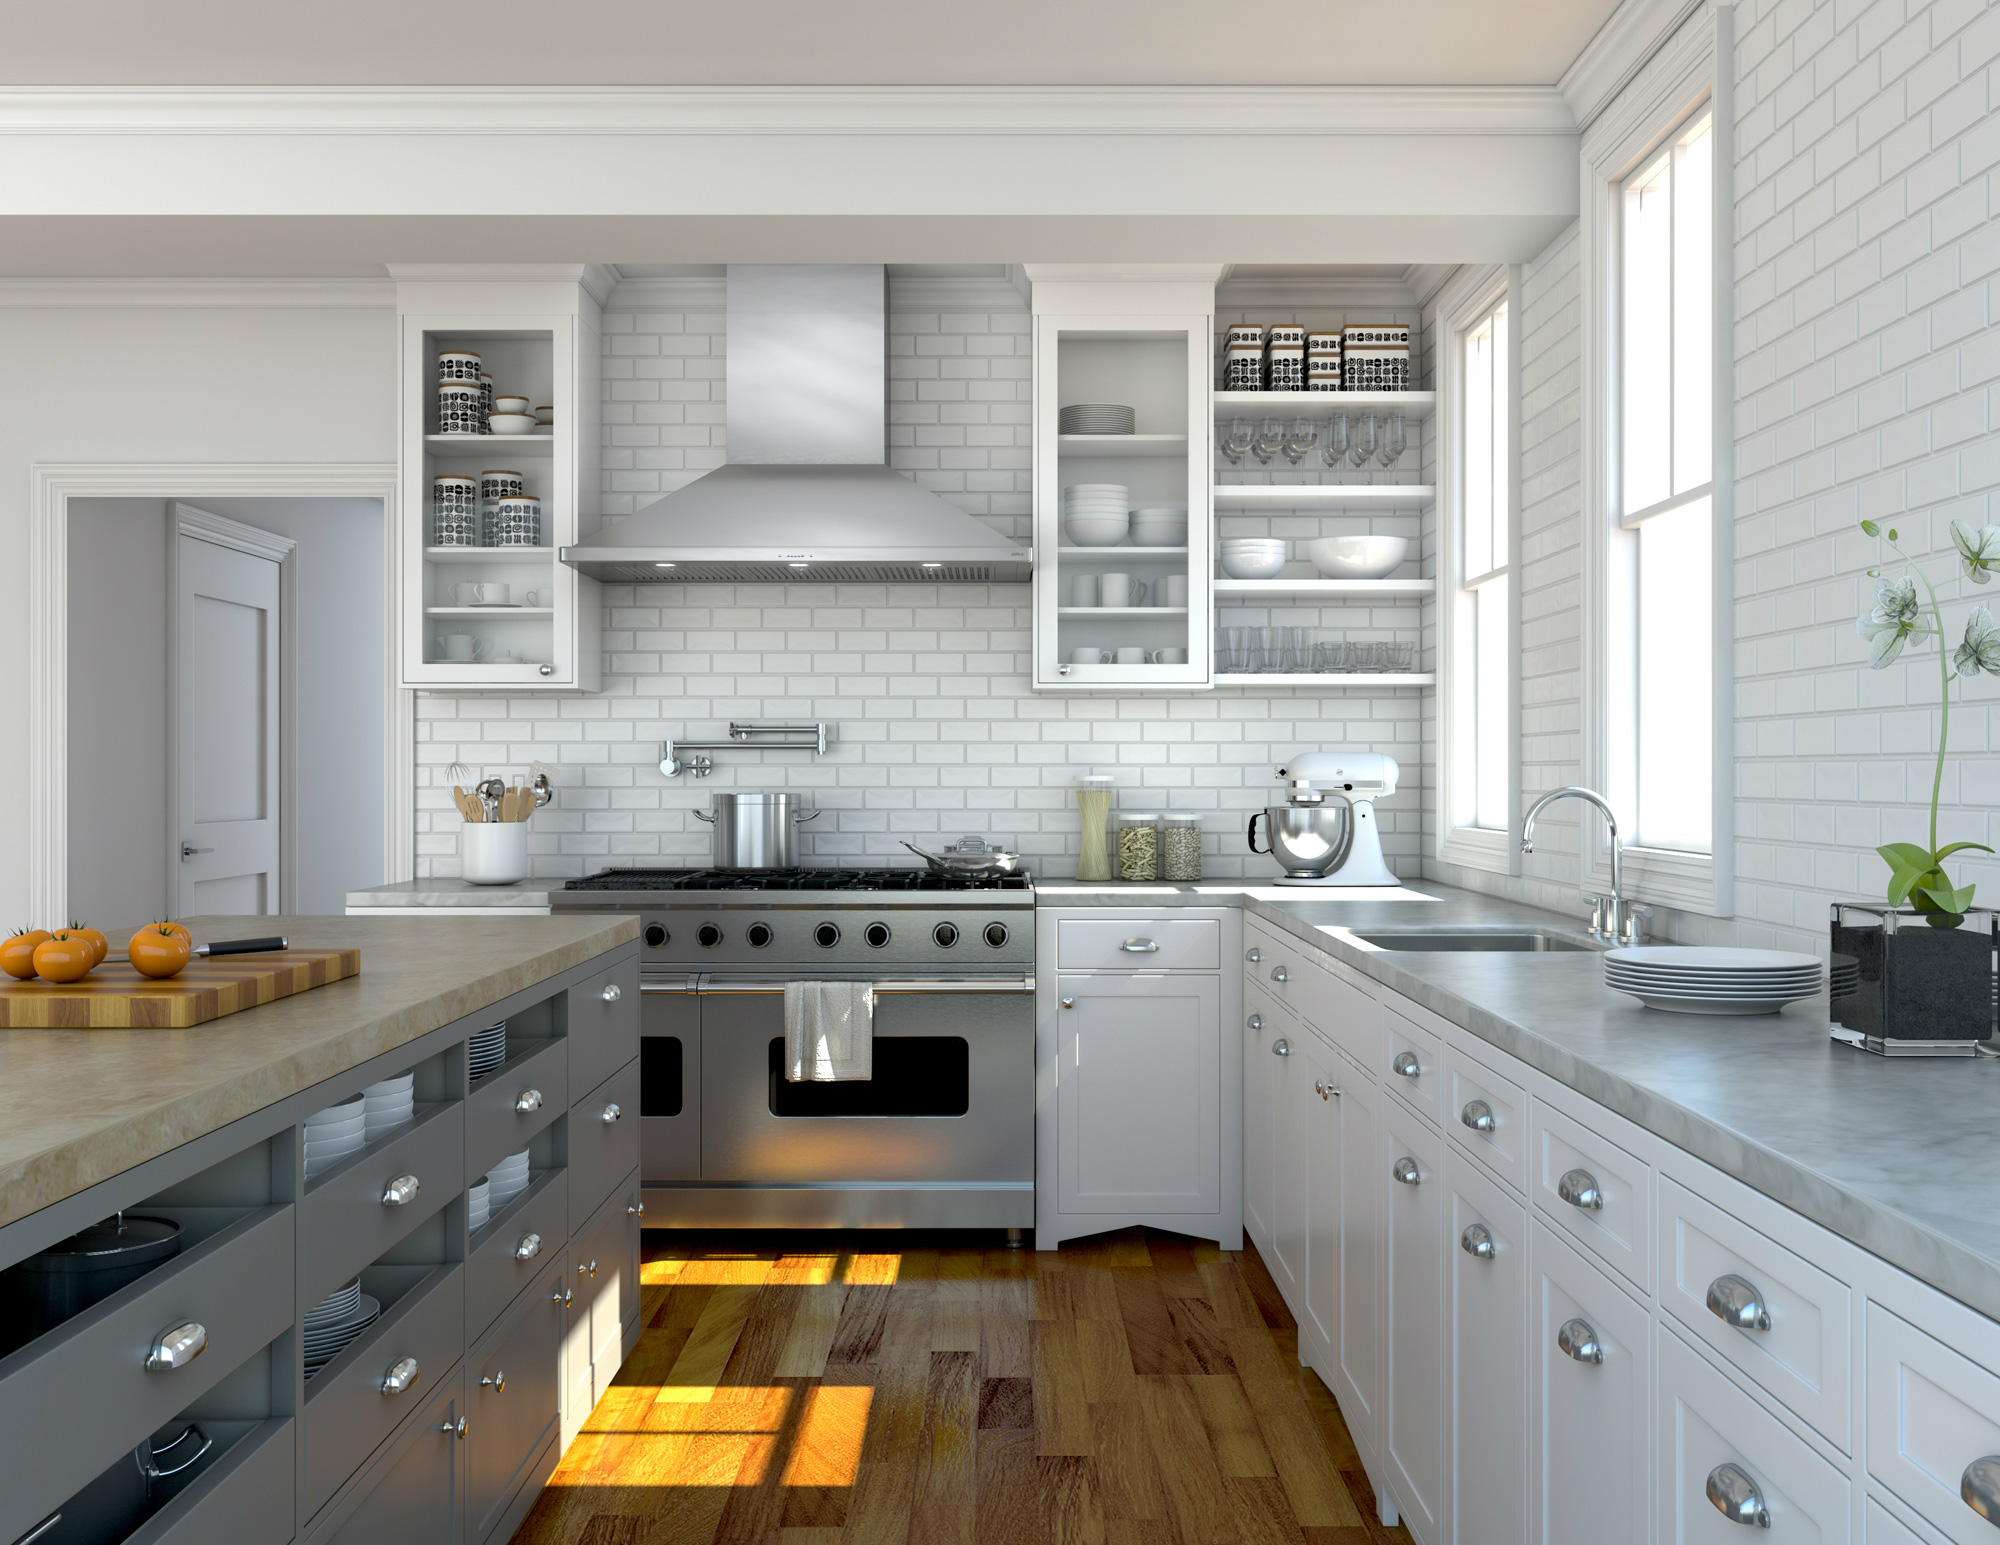 Downdraft Vs. Vent Hood - Which One is For You? - Absolute ...